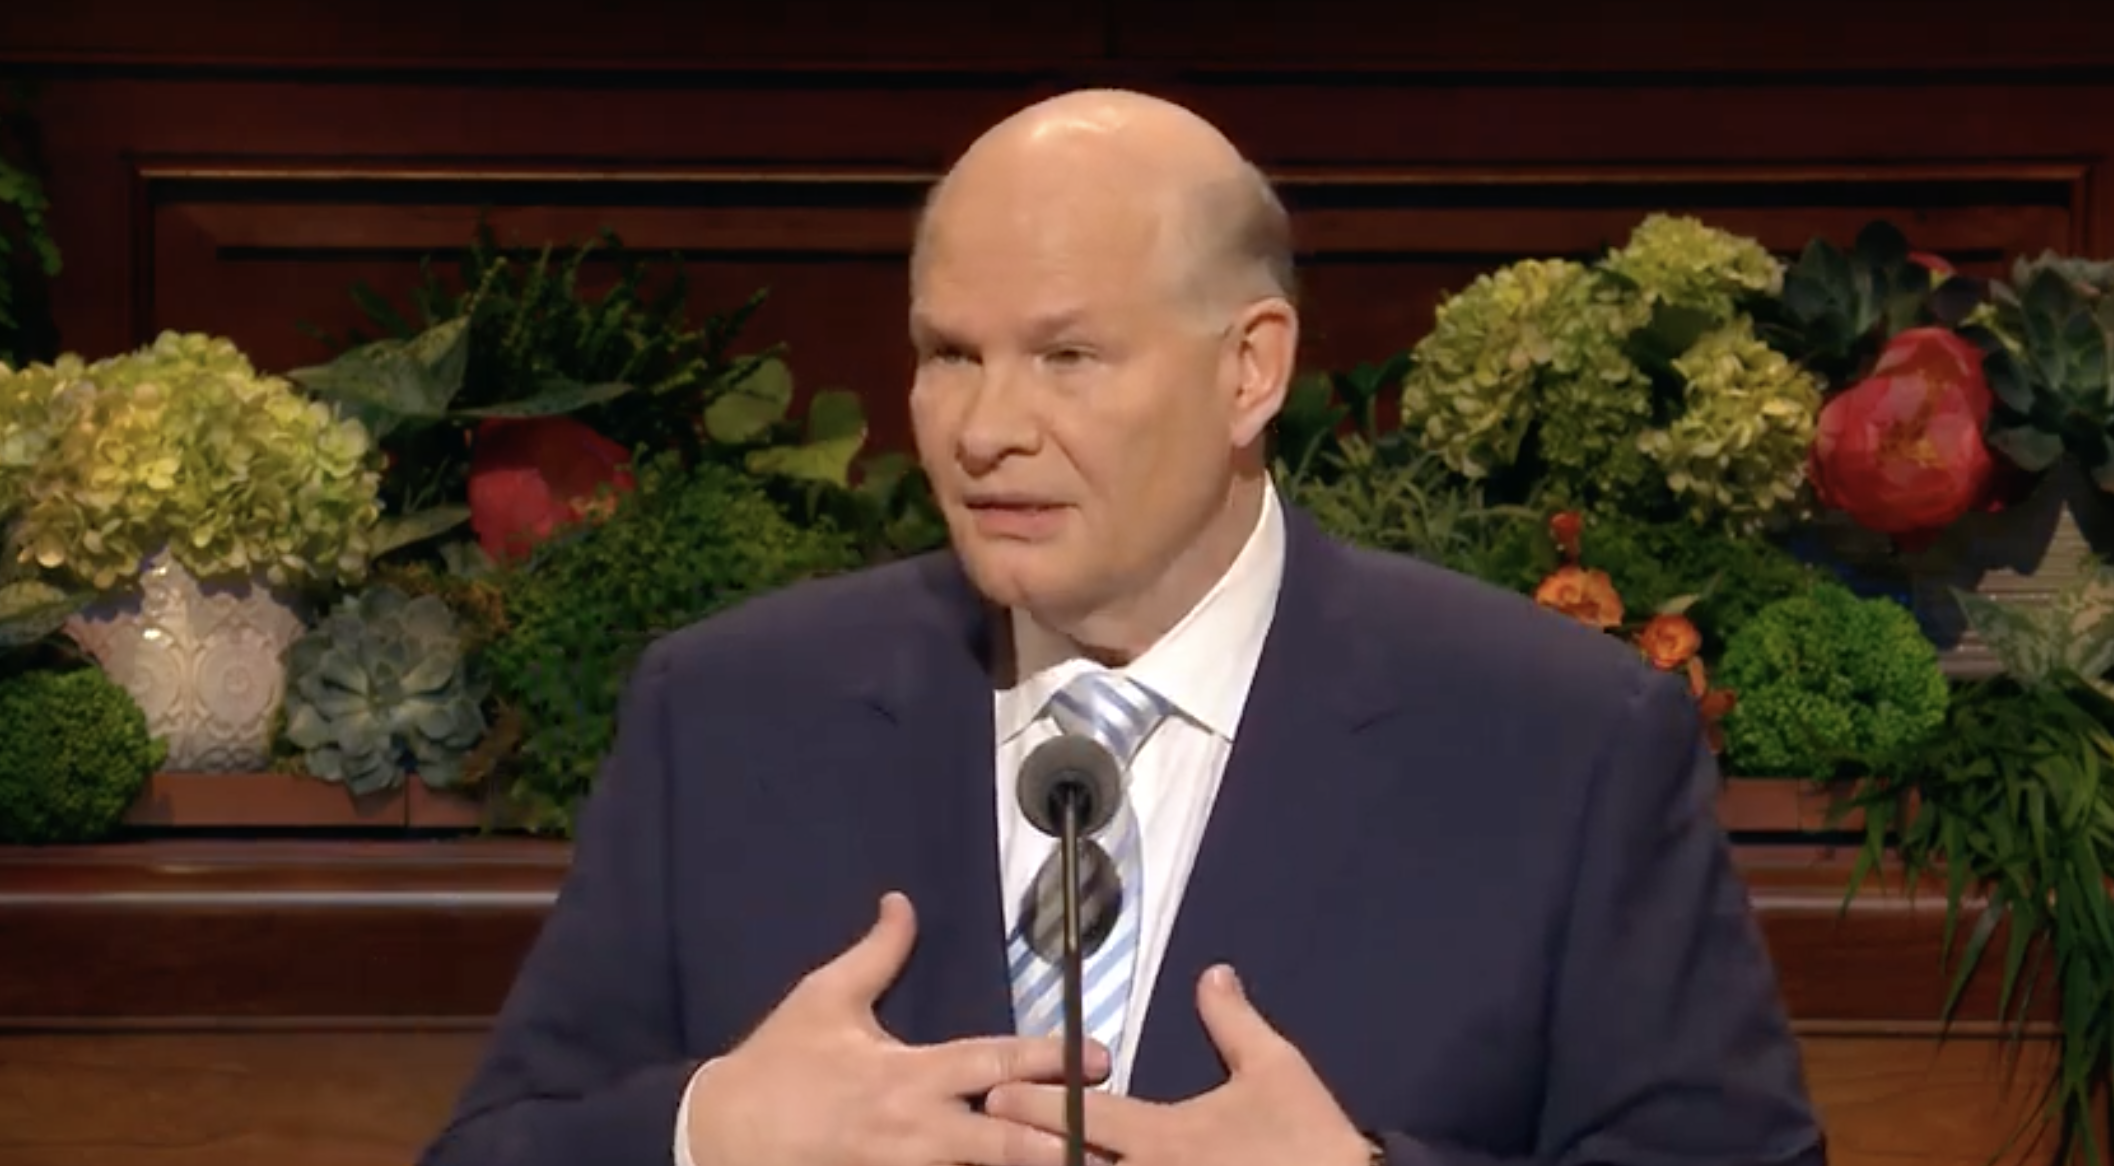 Elder Dale G. Renlund of the Quorum of the Twelve Apostles gives his address during the Sunday morning session of the 189th Annual General Conference on April 7, 2019.